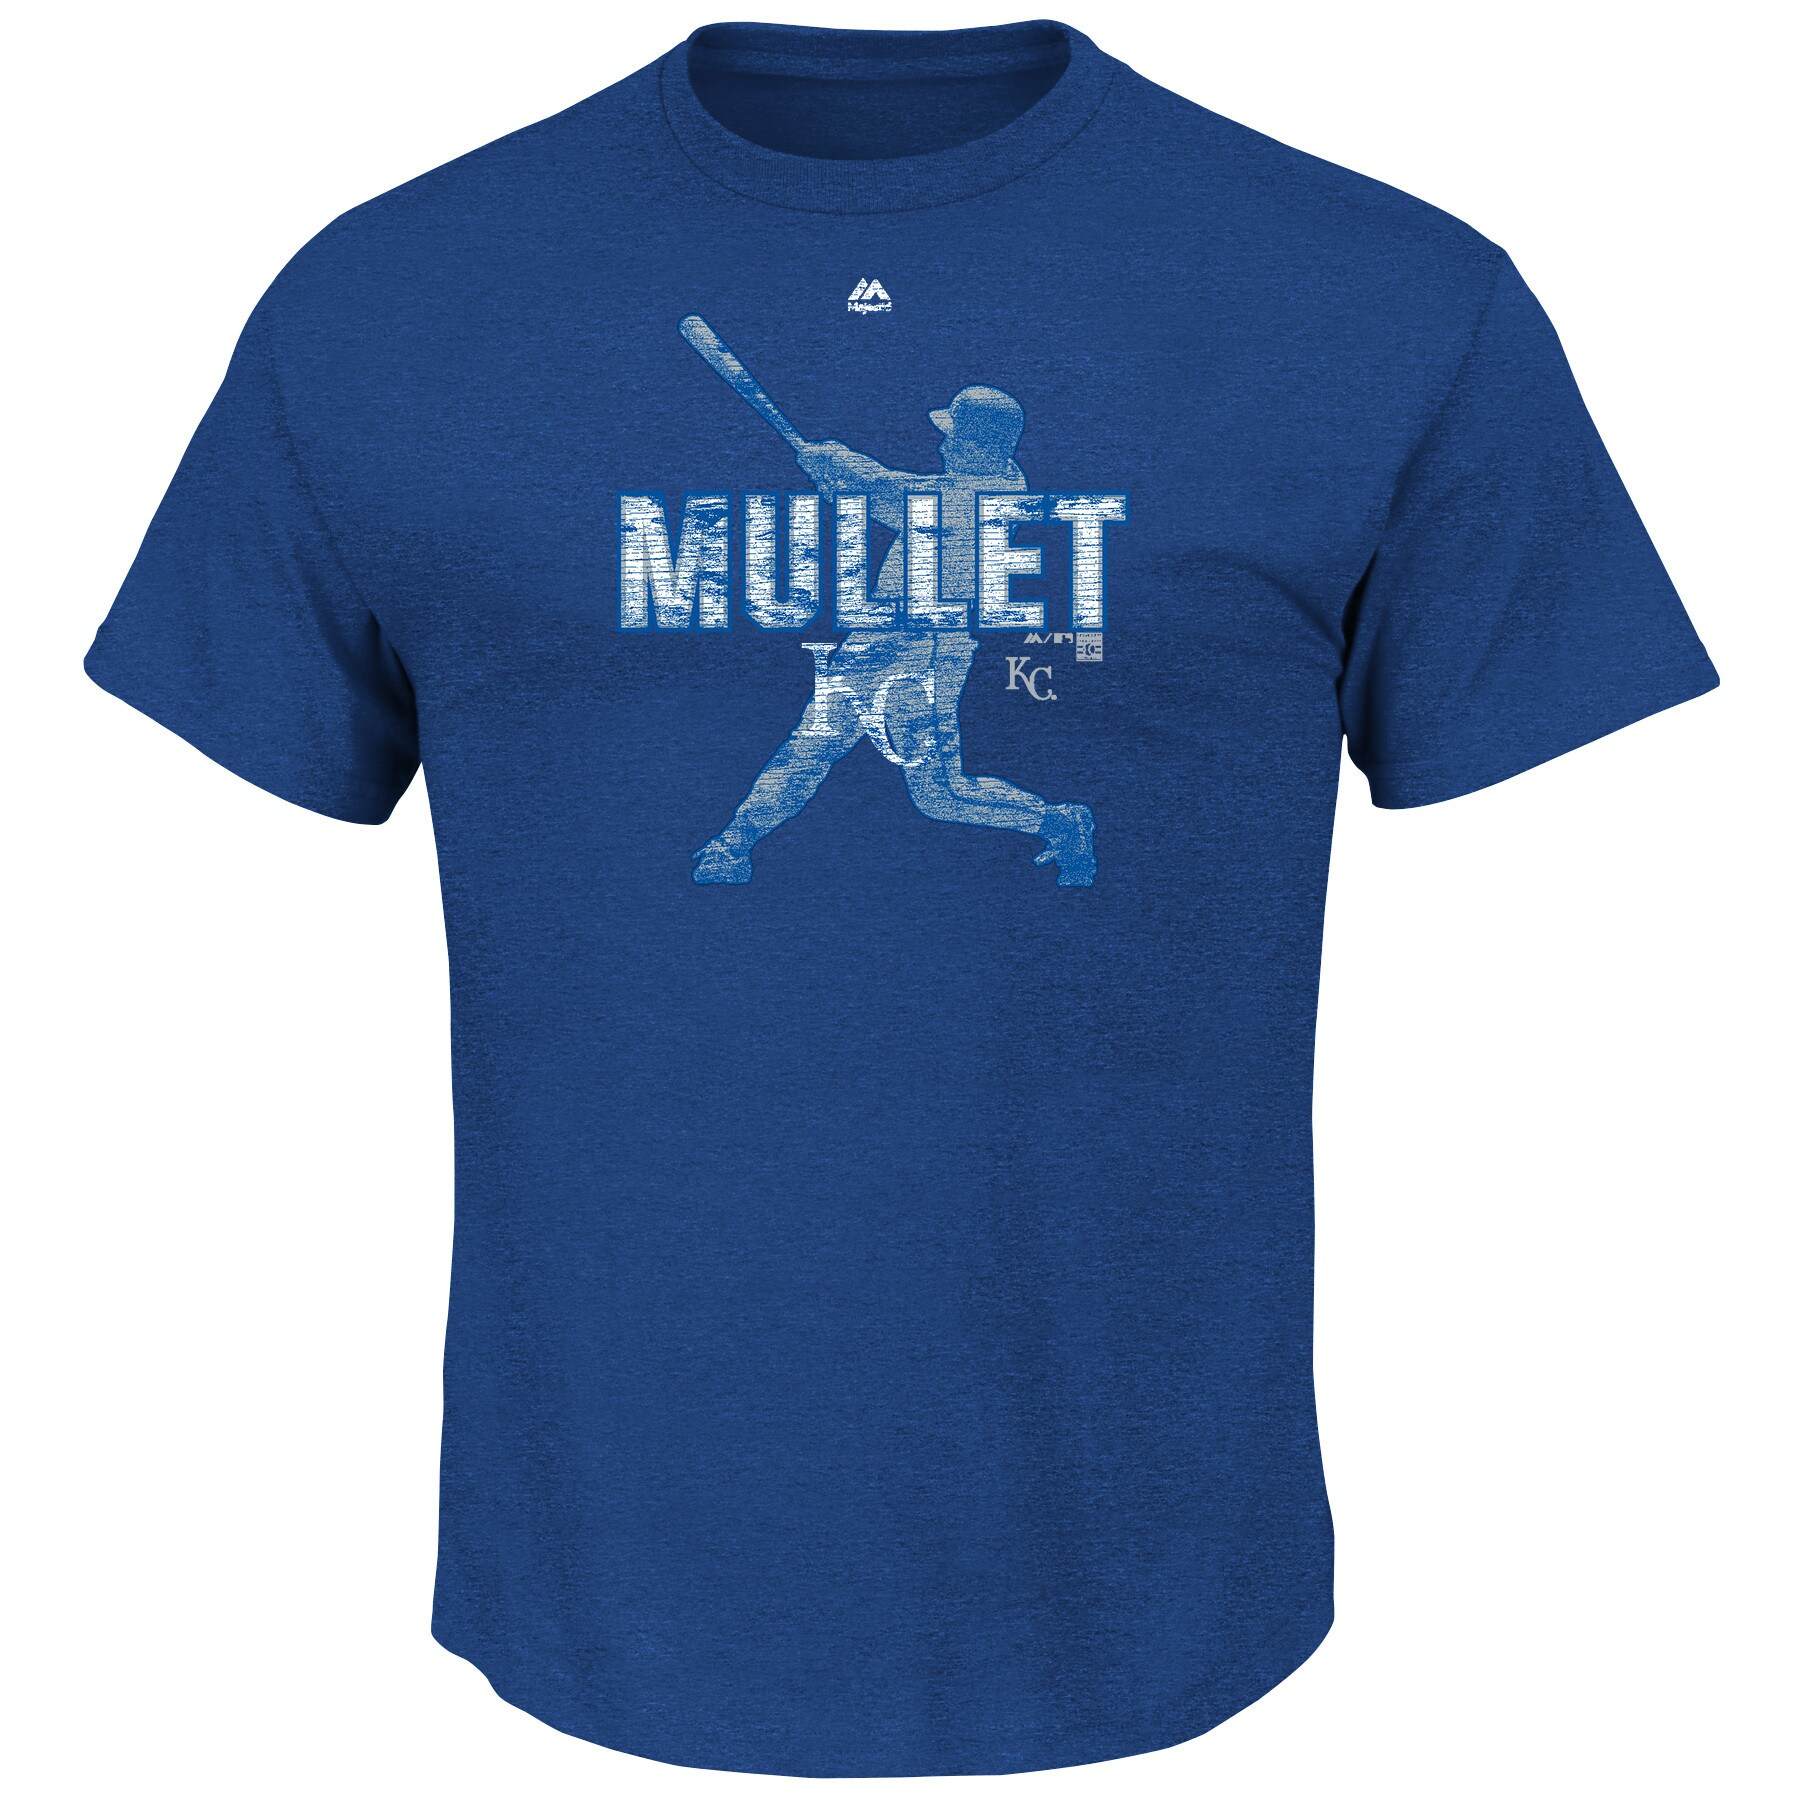 George Brett Kansas City Royals Majestic Cooperstown Emotion Evoked T-Shirt - Royal